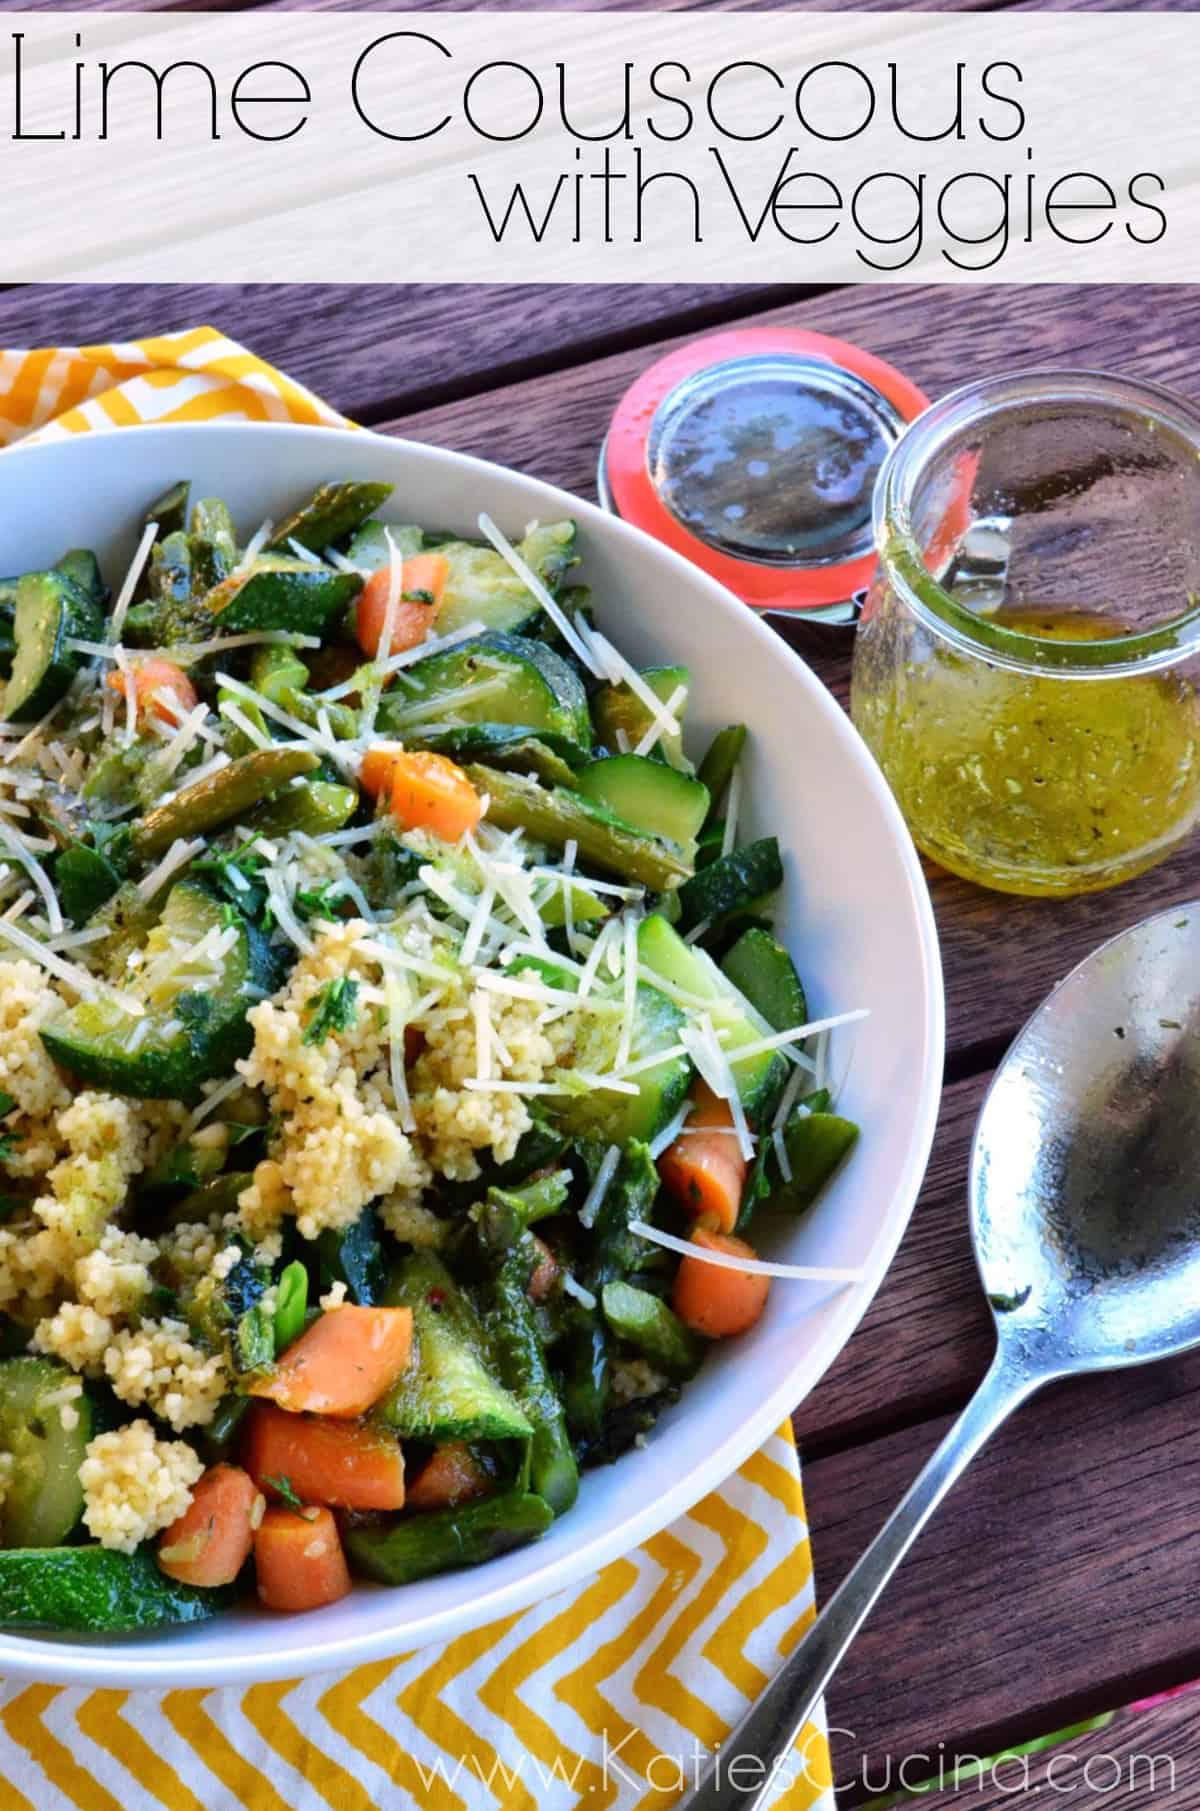 Lime Couscous with Veggies from KatiesCucina.com #recipe #couscous